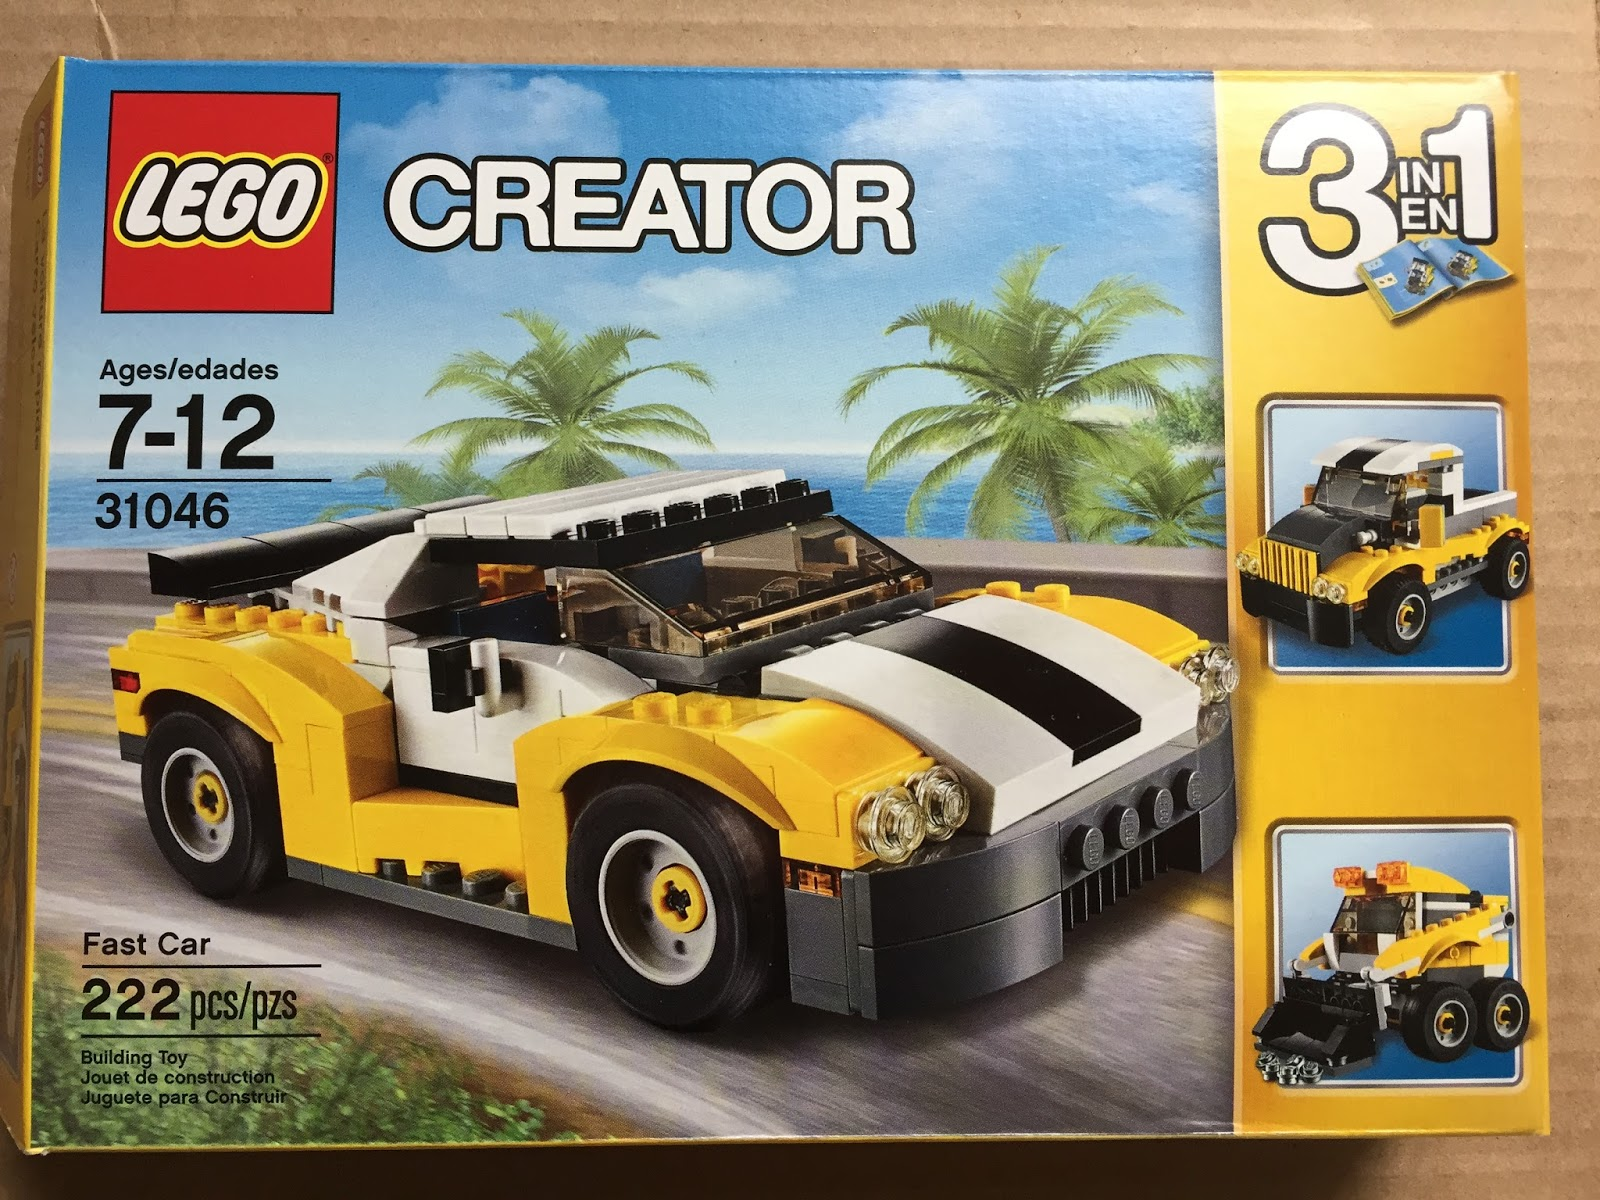 Lego Creator 3 in 1 Fast Car Review 31046